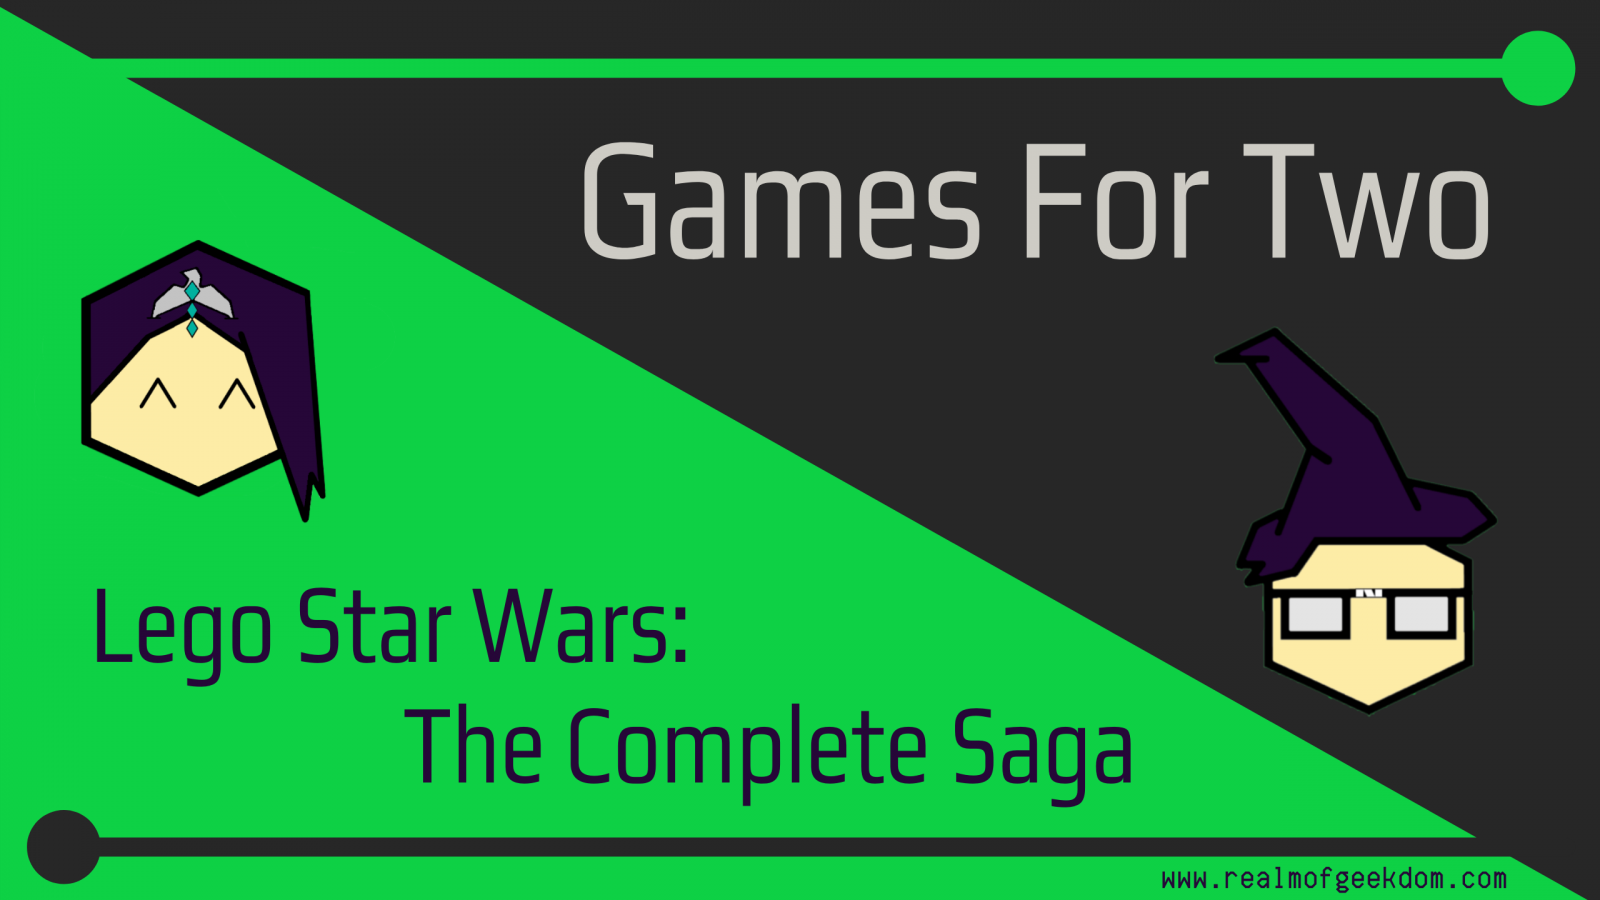 Games for Two - Lego Star Wars The Complete Saga